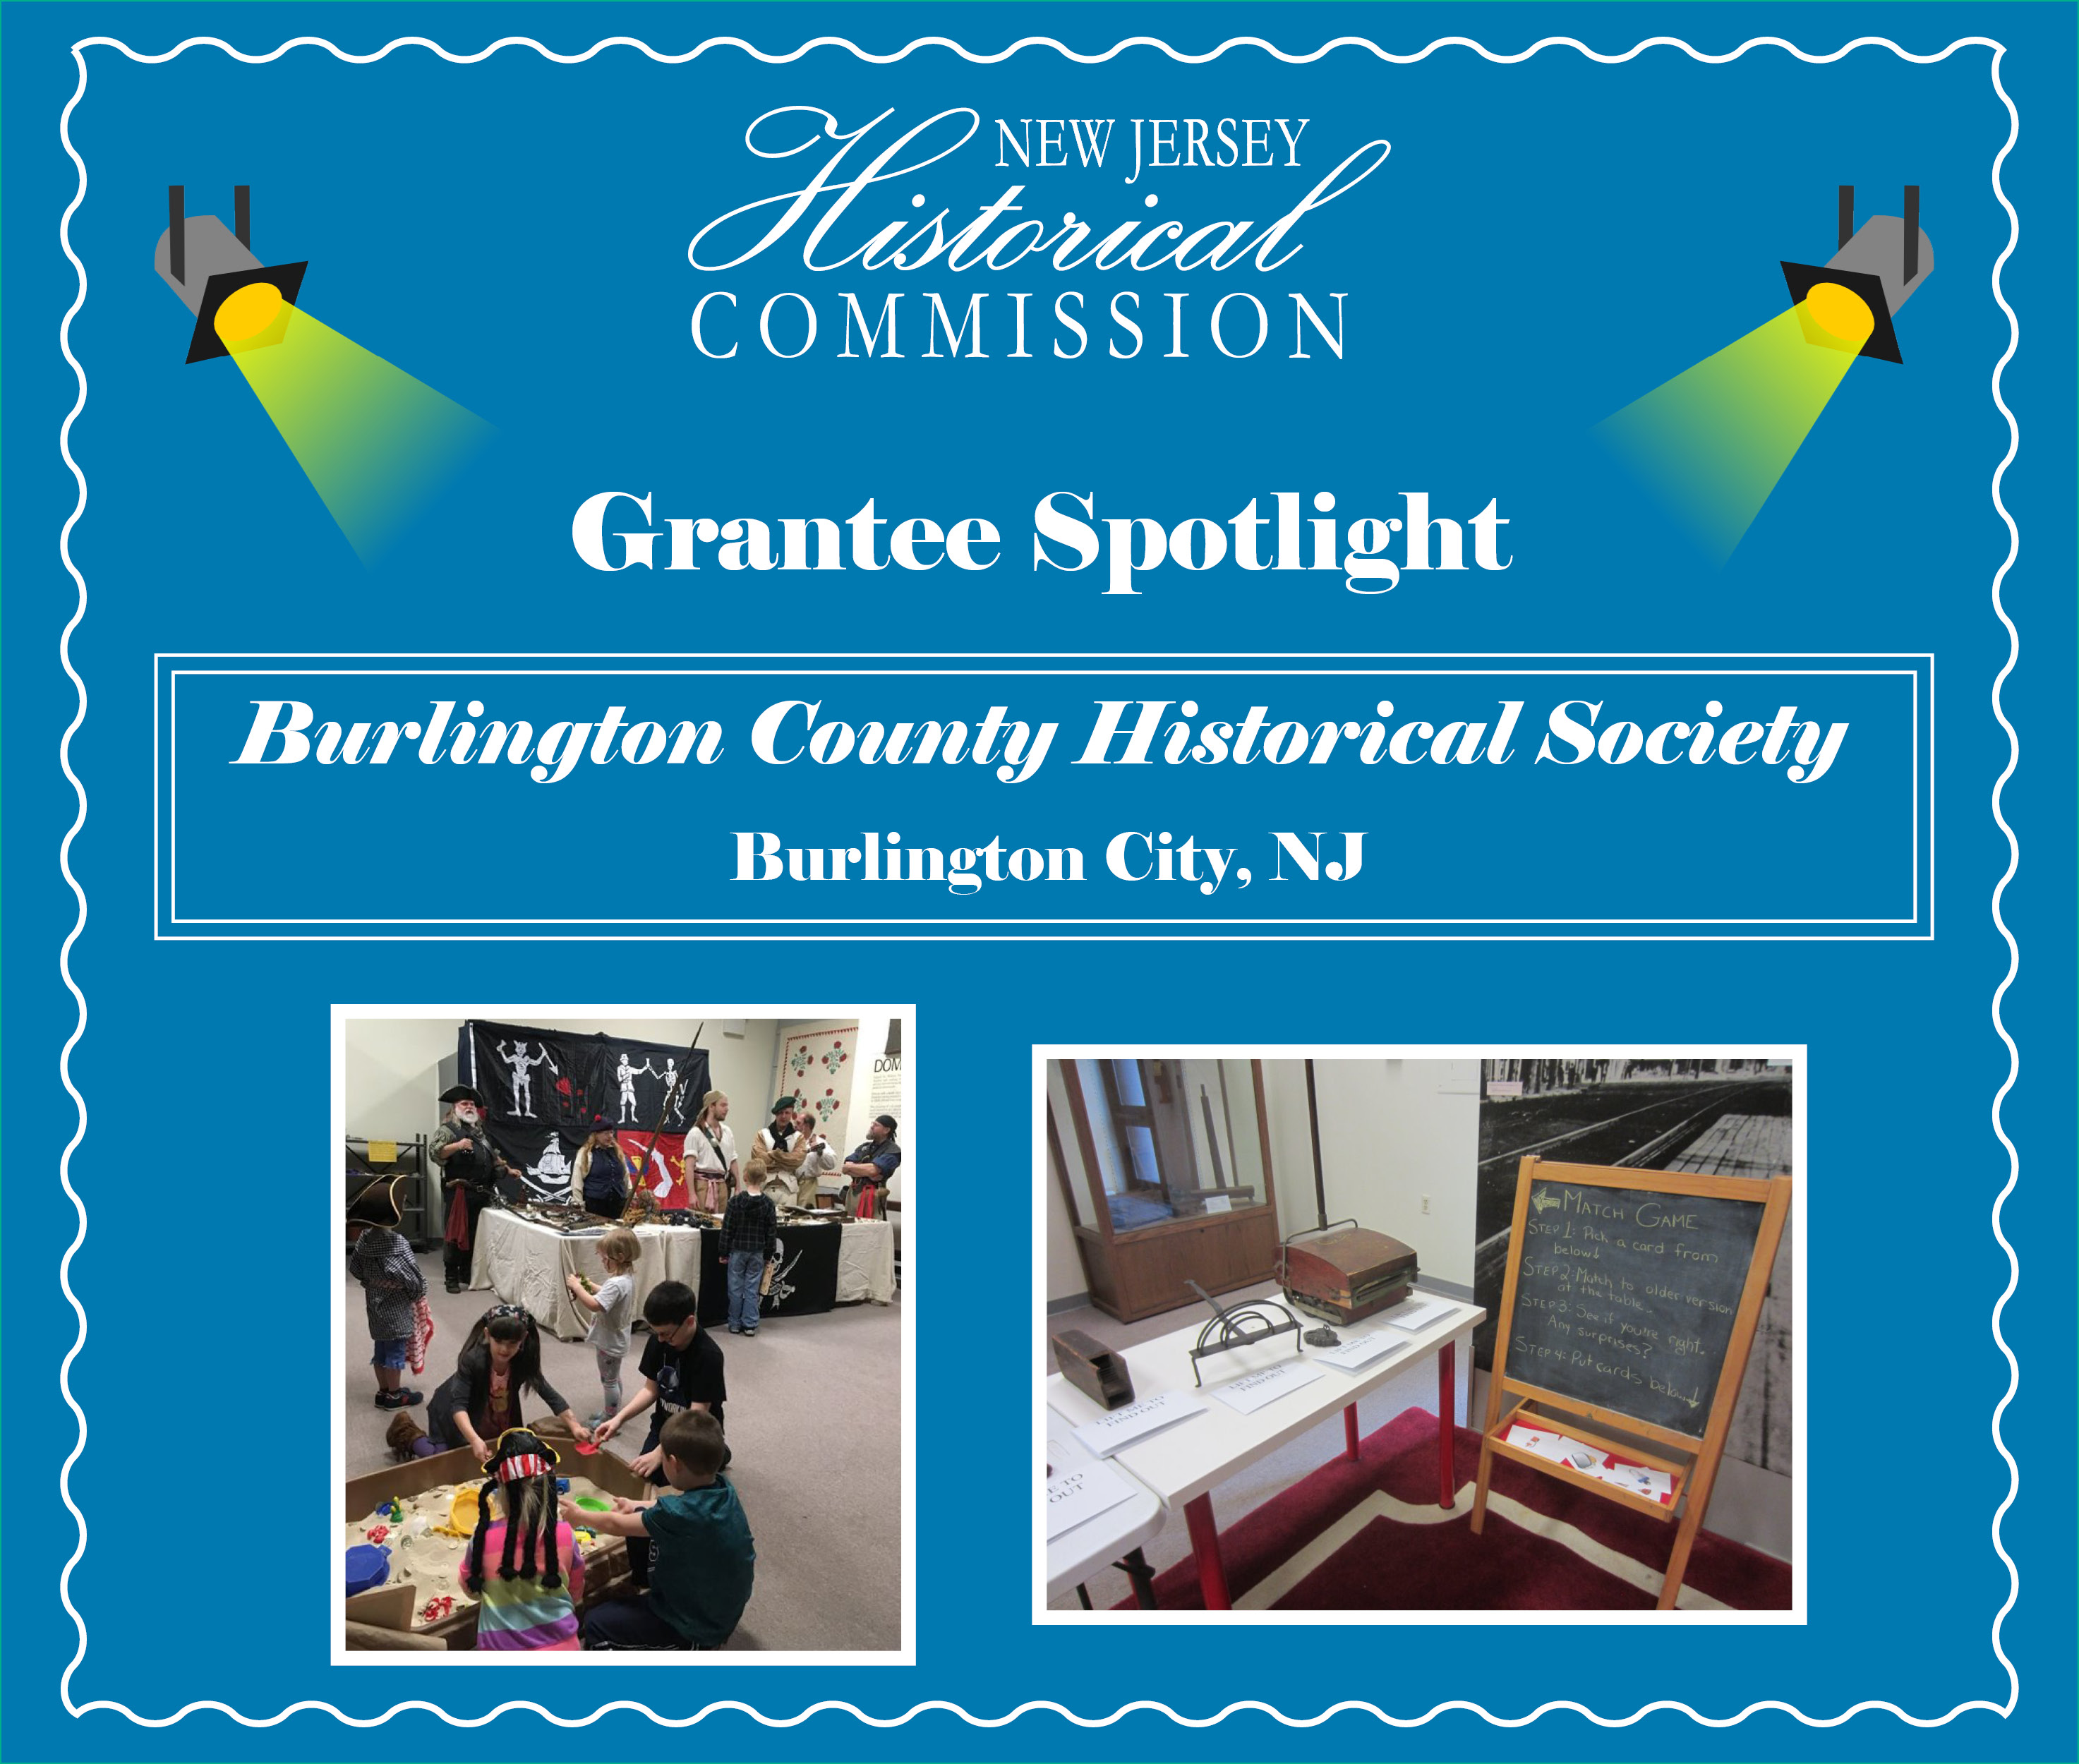 New Jersey Historical Commission Grantee Spotlight: Burlington County Historical Society